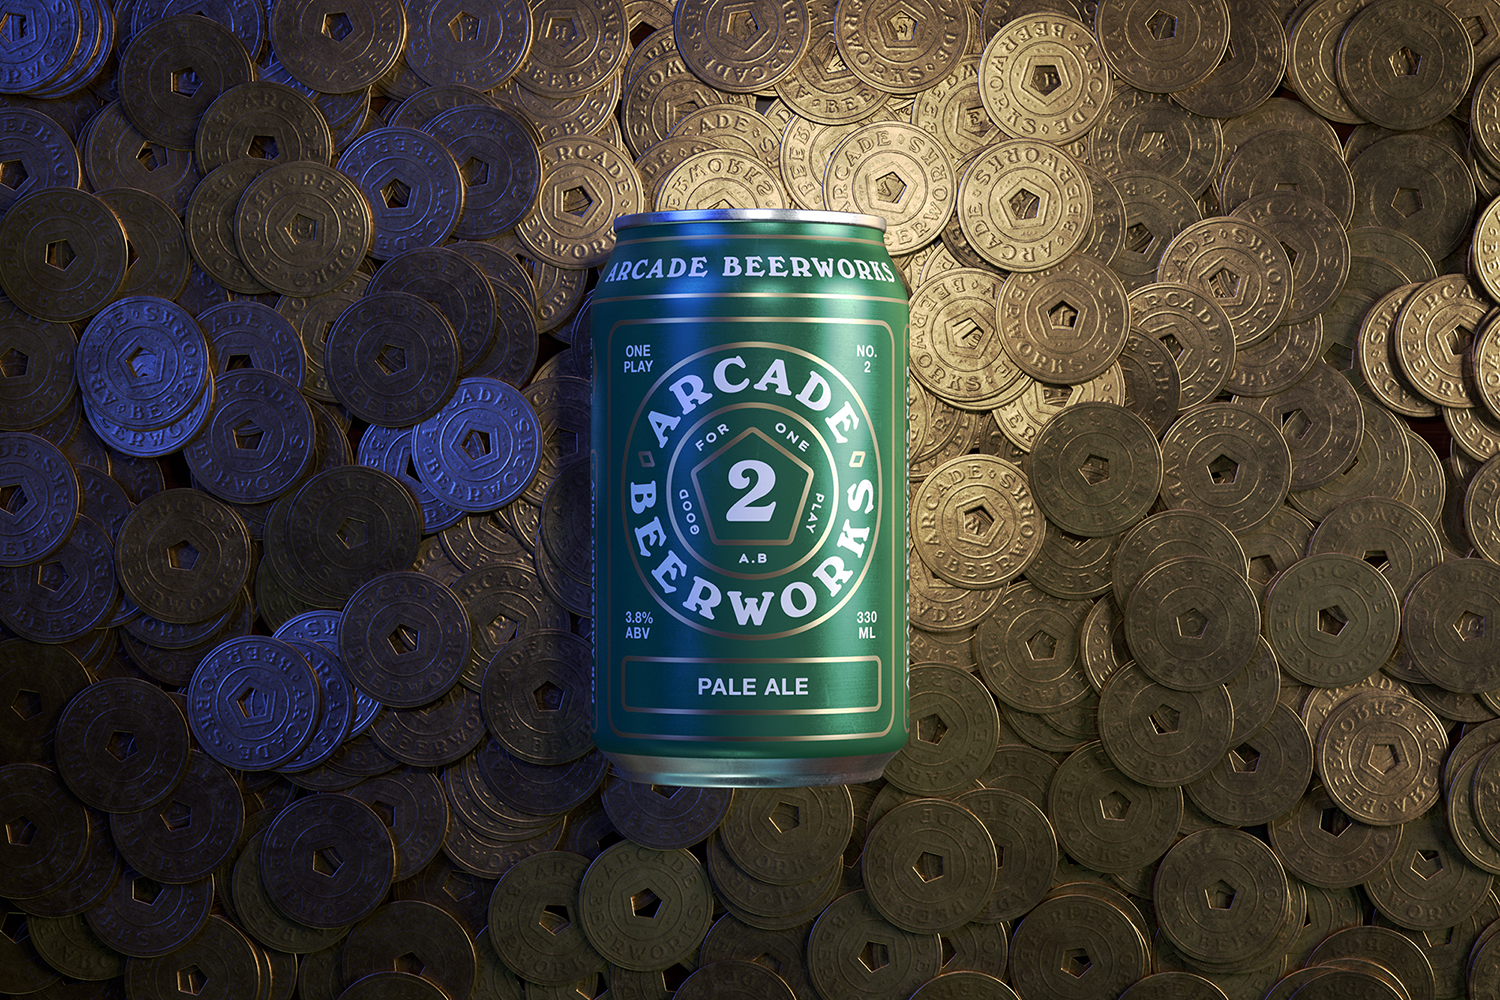 Good for One play: Arcade Beerworks New Own Brand Created by Thirst Craft